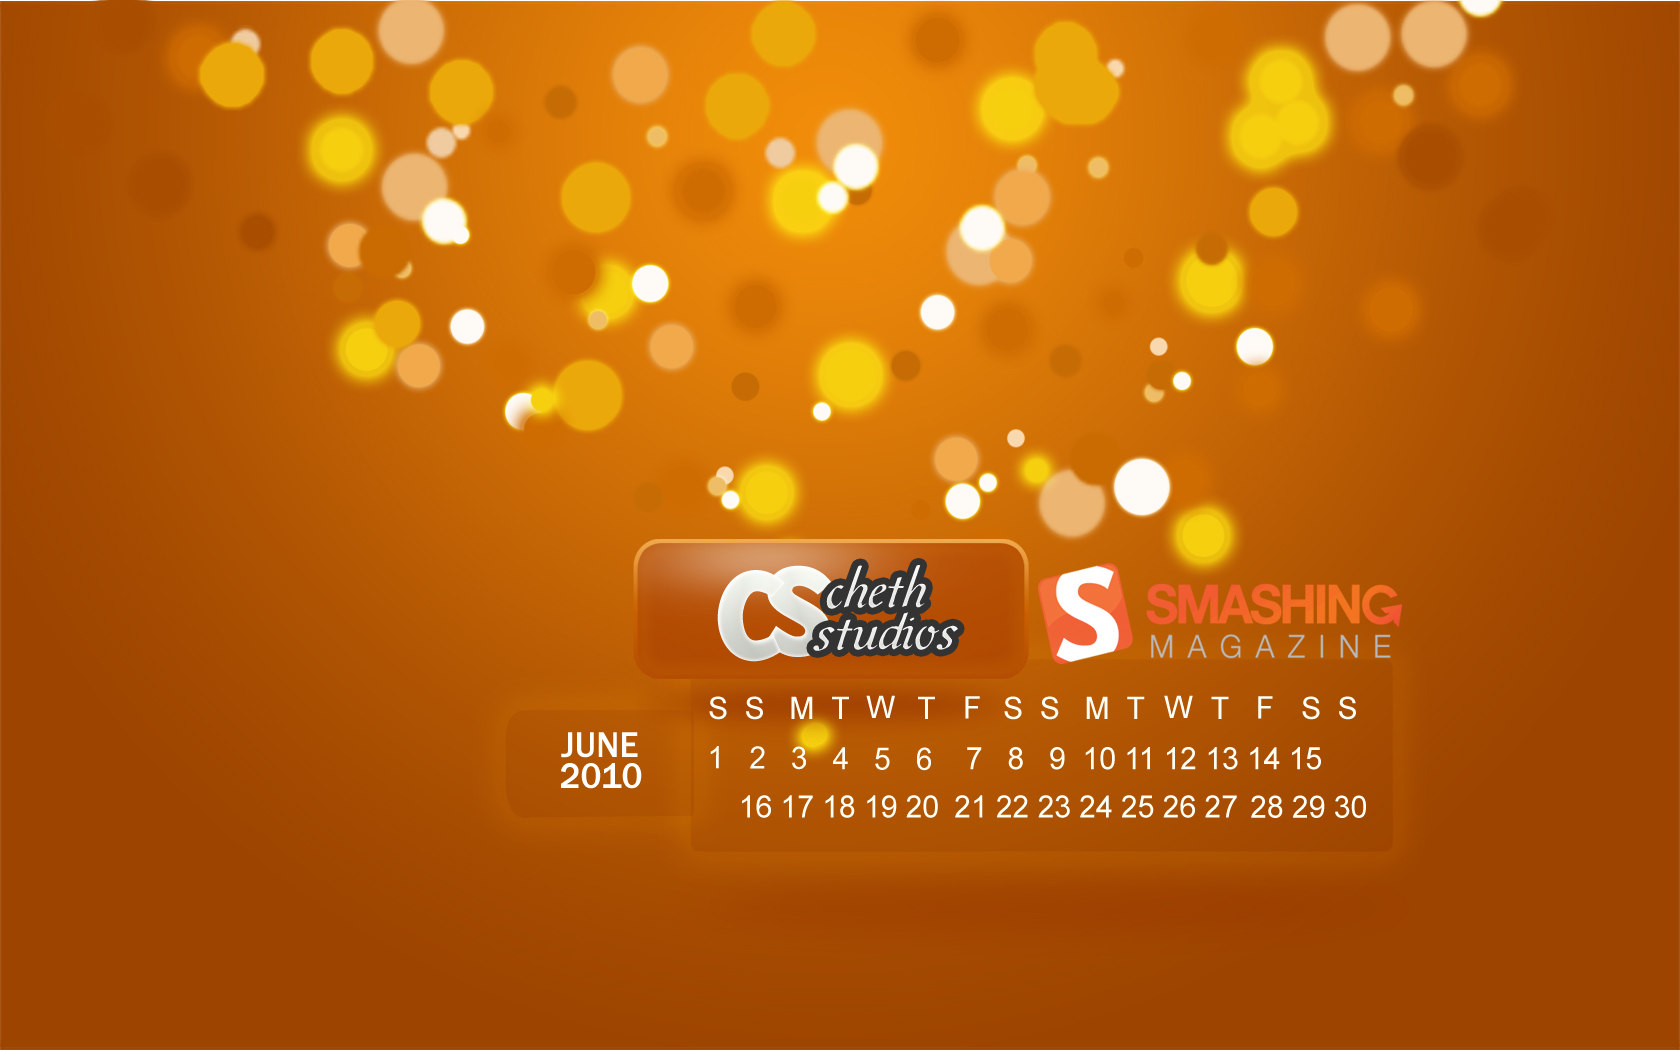 Calendar Wallpaper of the month 7380